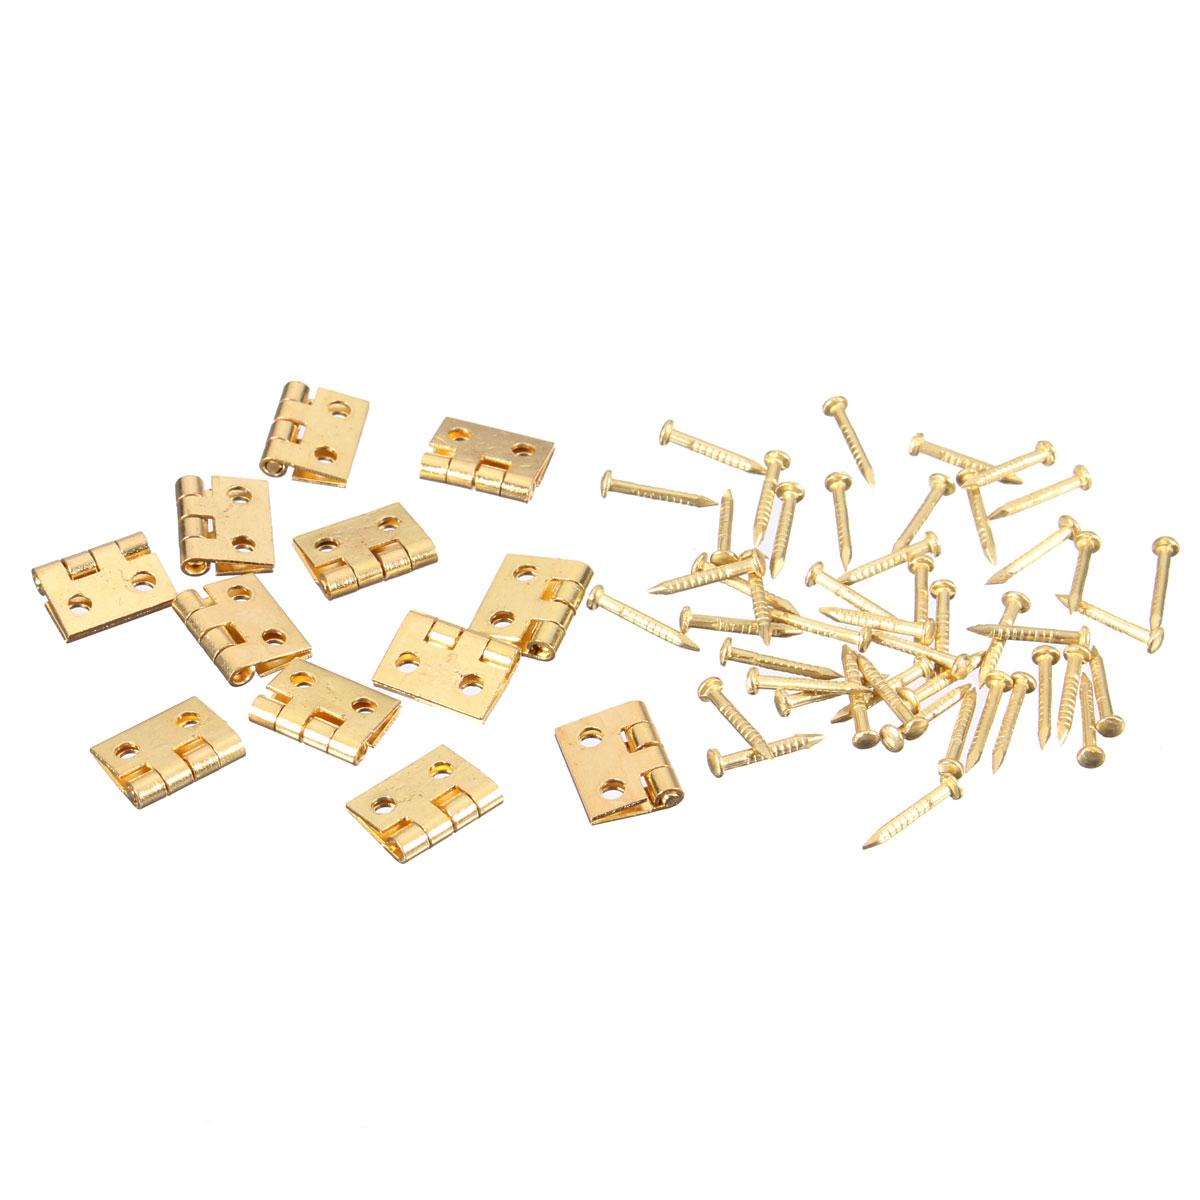 12Pcs Mini jewelry Box Repairing/ Doll House/ Cabinet/ Drawer Butt Hinges Screws(China (Mainland))